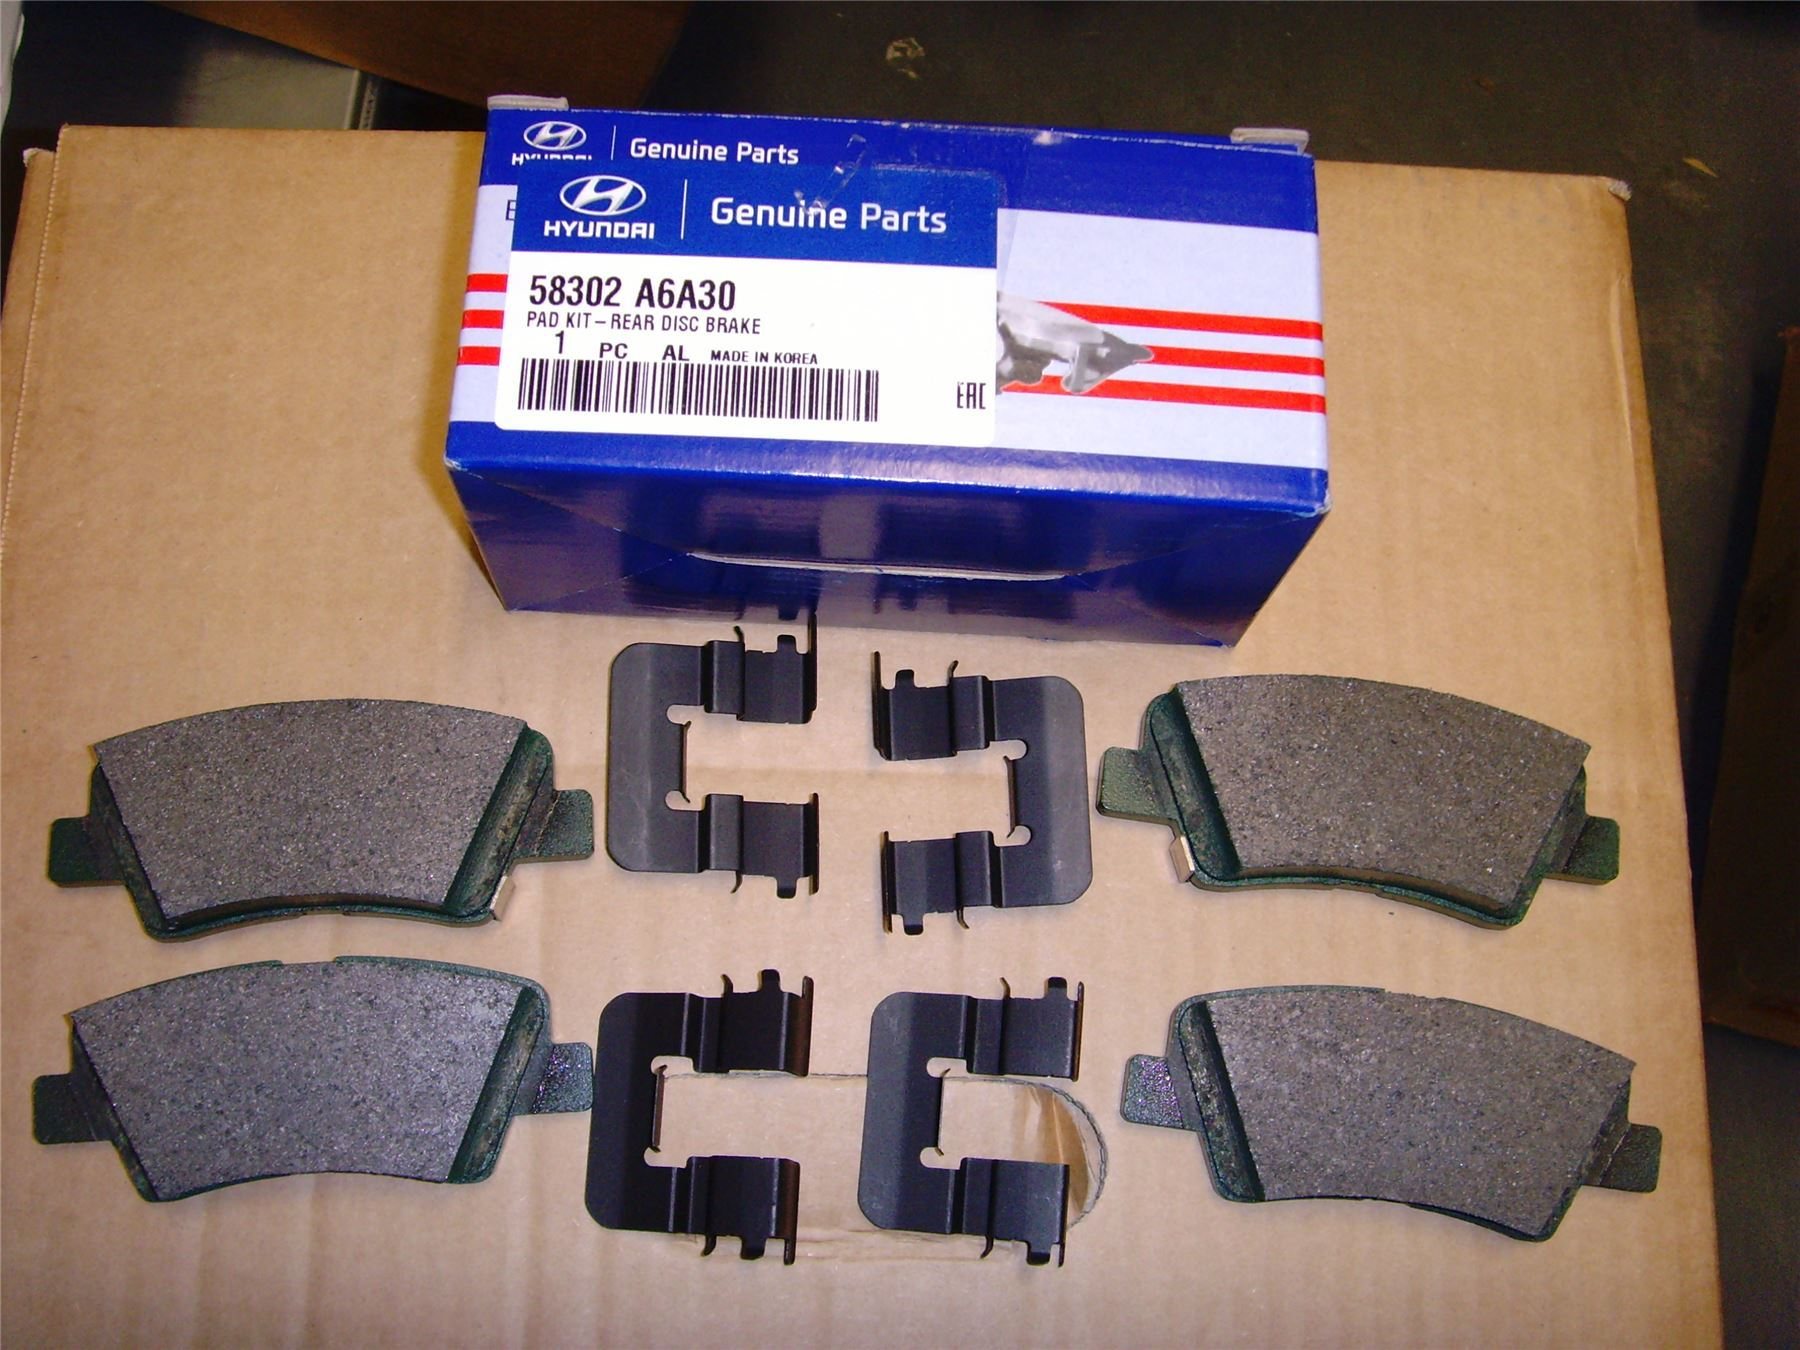 GENUINE HYUNDAI i30 Rear Disc Brake Pad Kit 58302A6A30